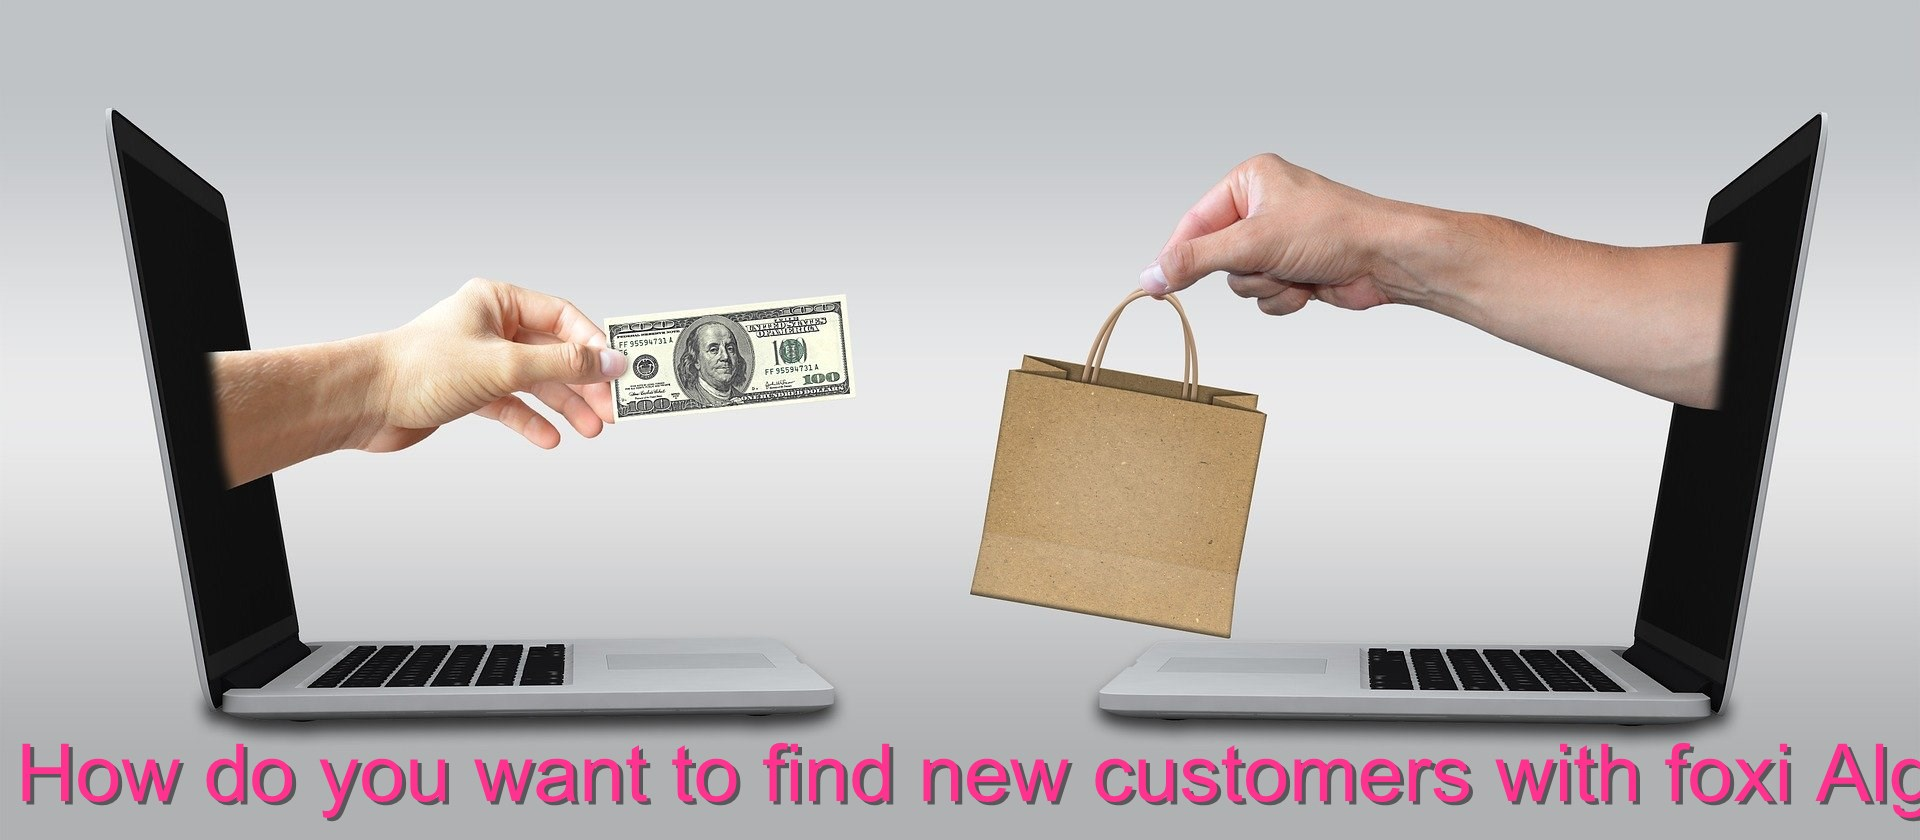 How do you want to find new customers with foxi Algo